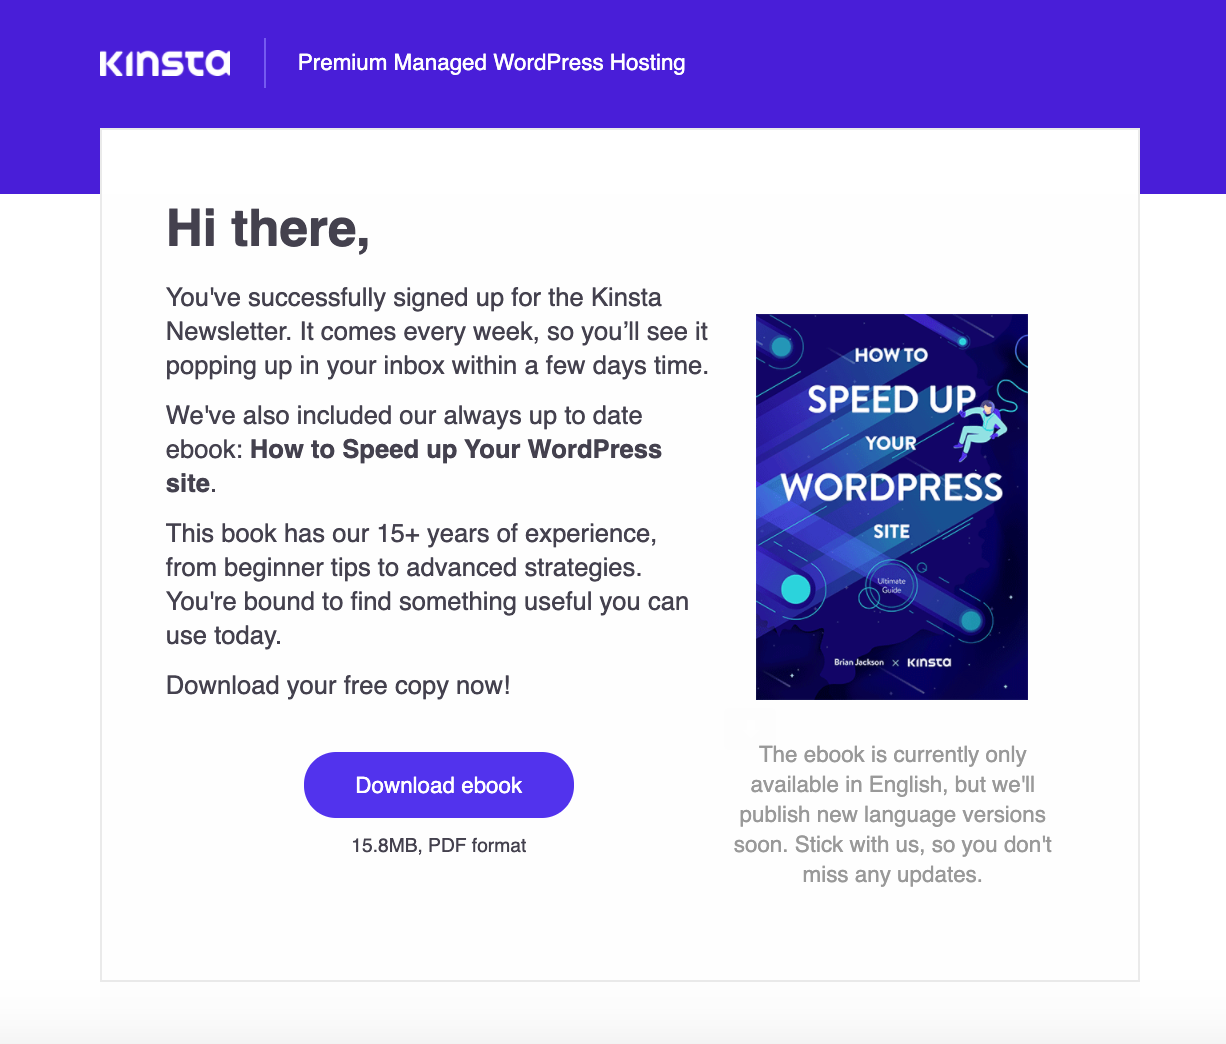 Kinsta's first email after newsletter subscription